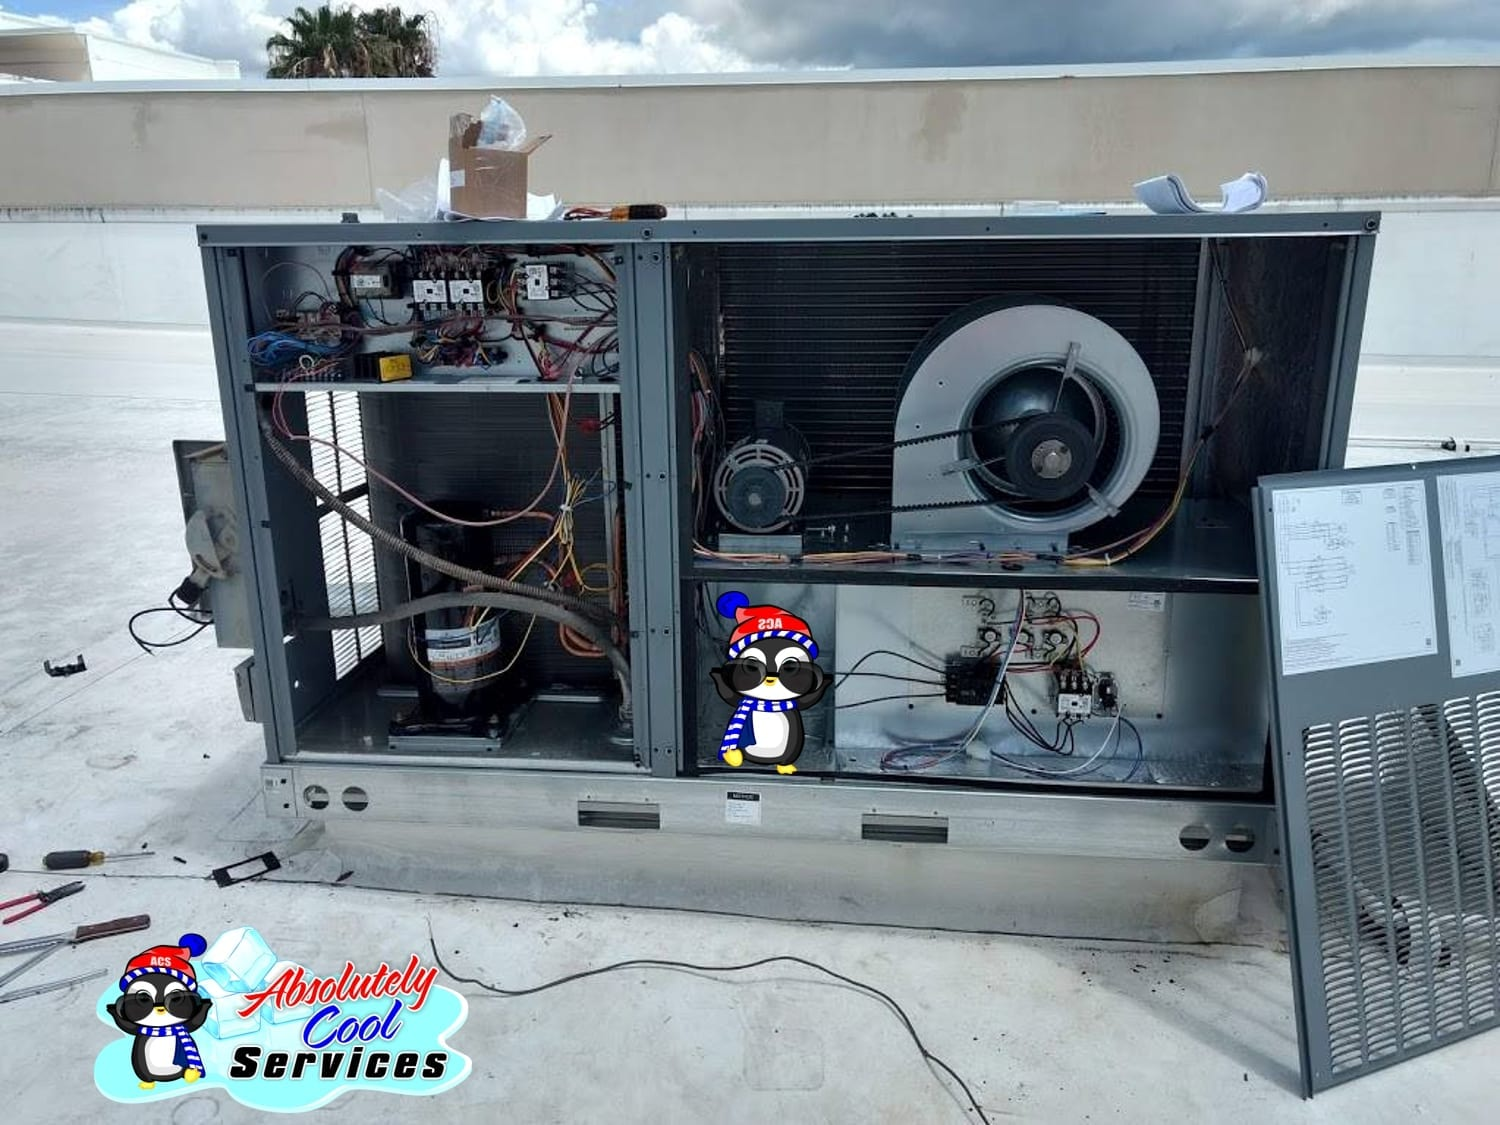 Roof Air Conditioning | HVAC Diagnosis Company near Delray Beach